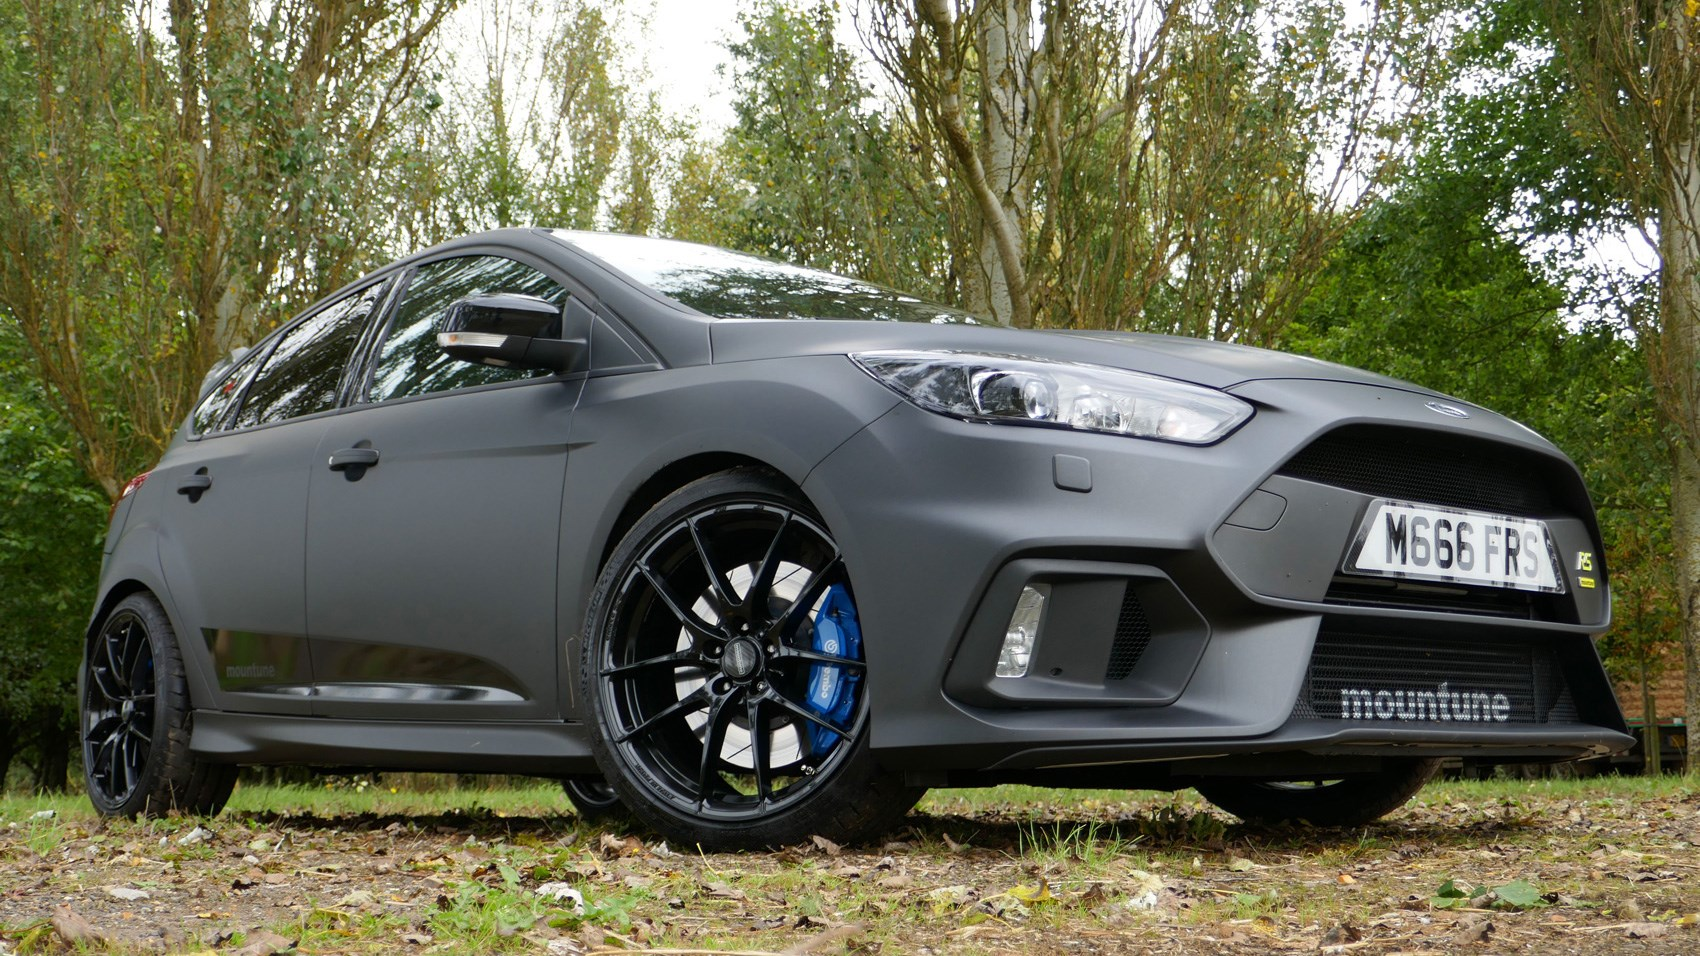 2017 Ford Focus Rs For Sale >> Ford Focus RS Mountune M400 (2017) review | CAR Magazine